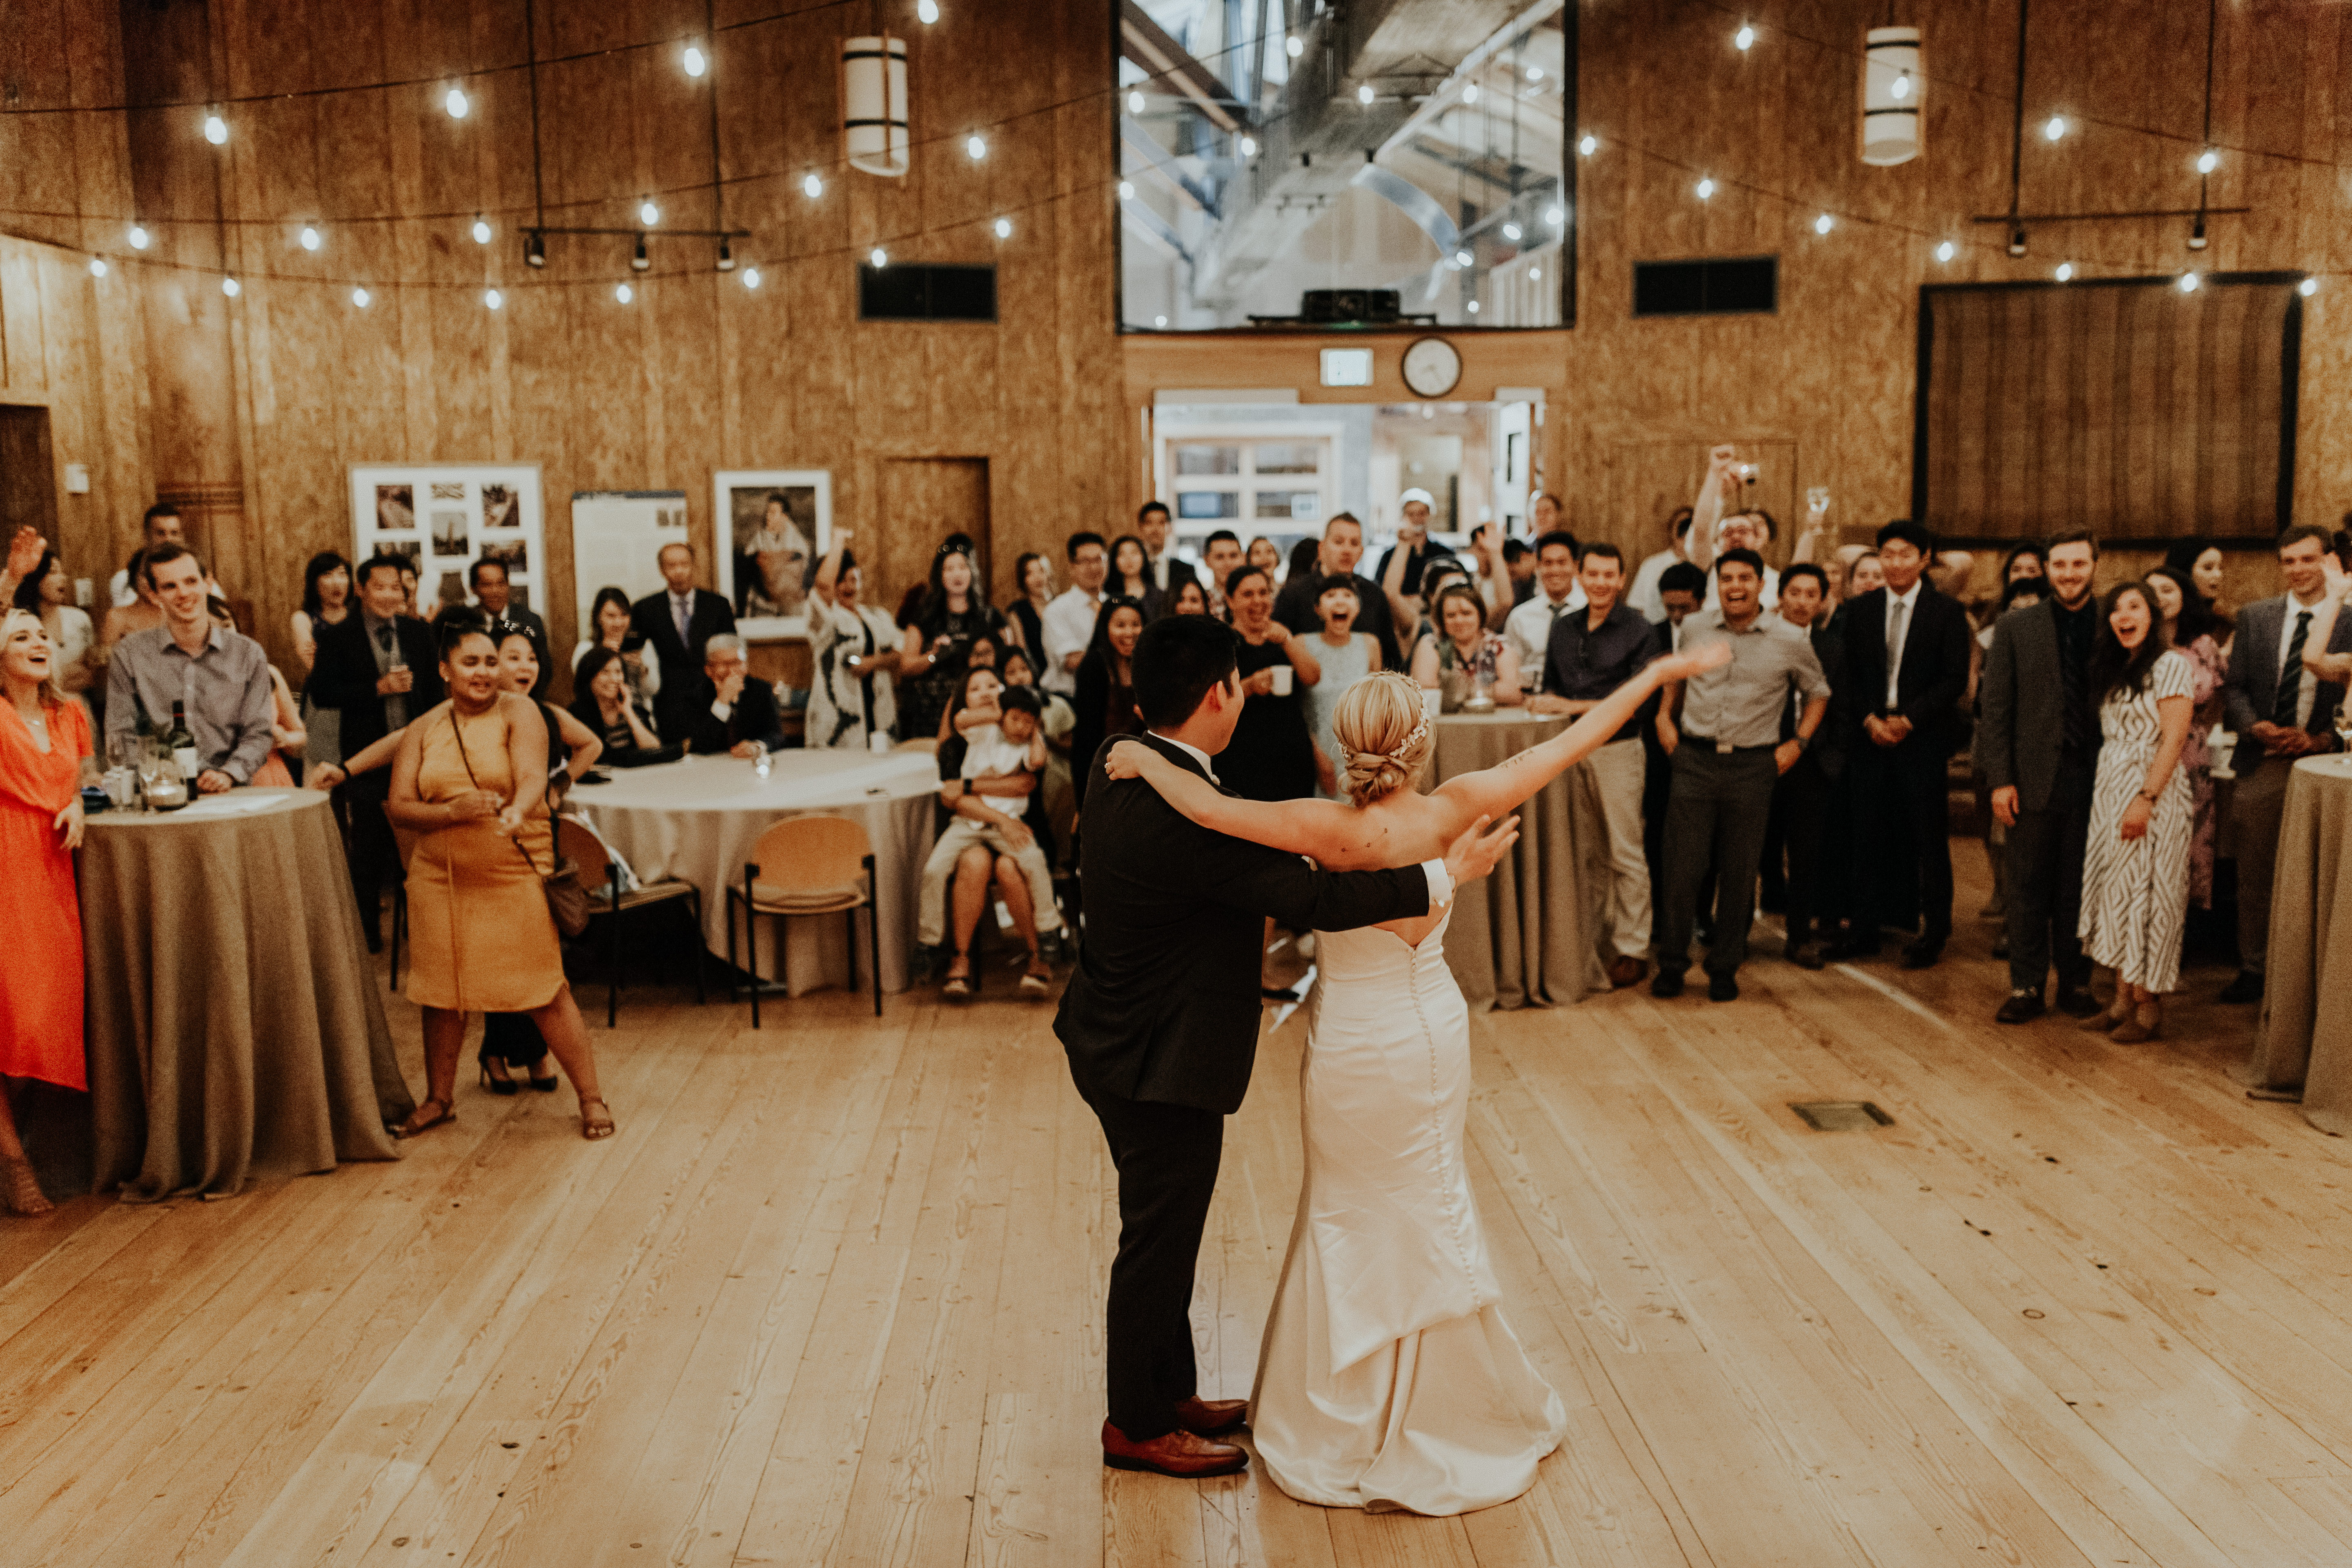 a wedding couple faces away from the camera with their arms outstretched in the Great Hall at IslandWood, an Outdoor Wedding Venue